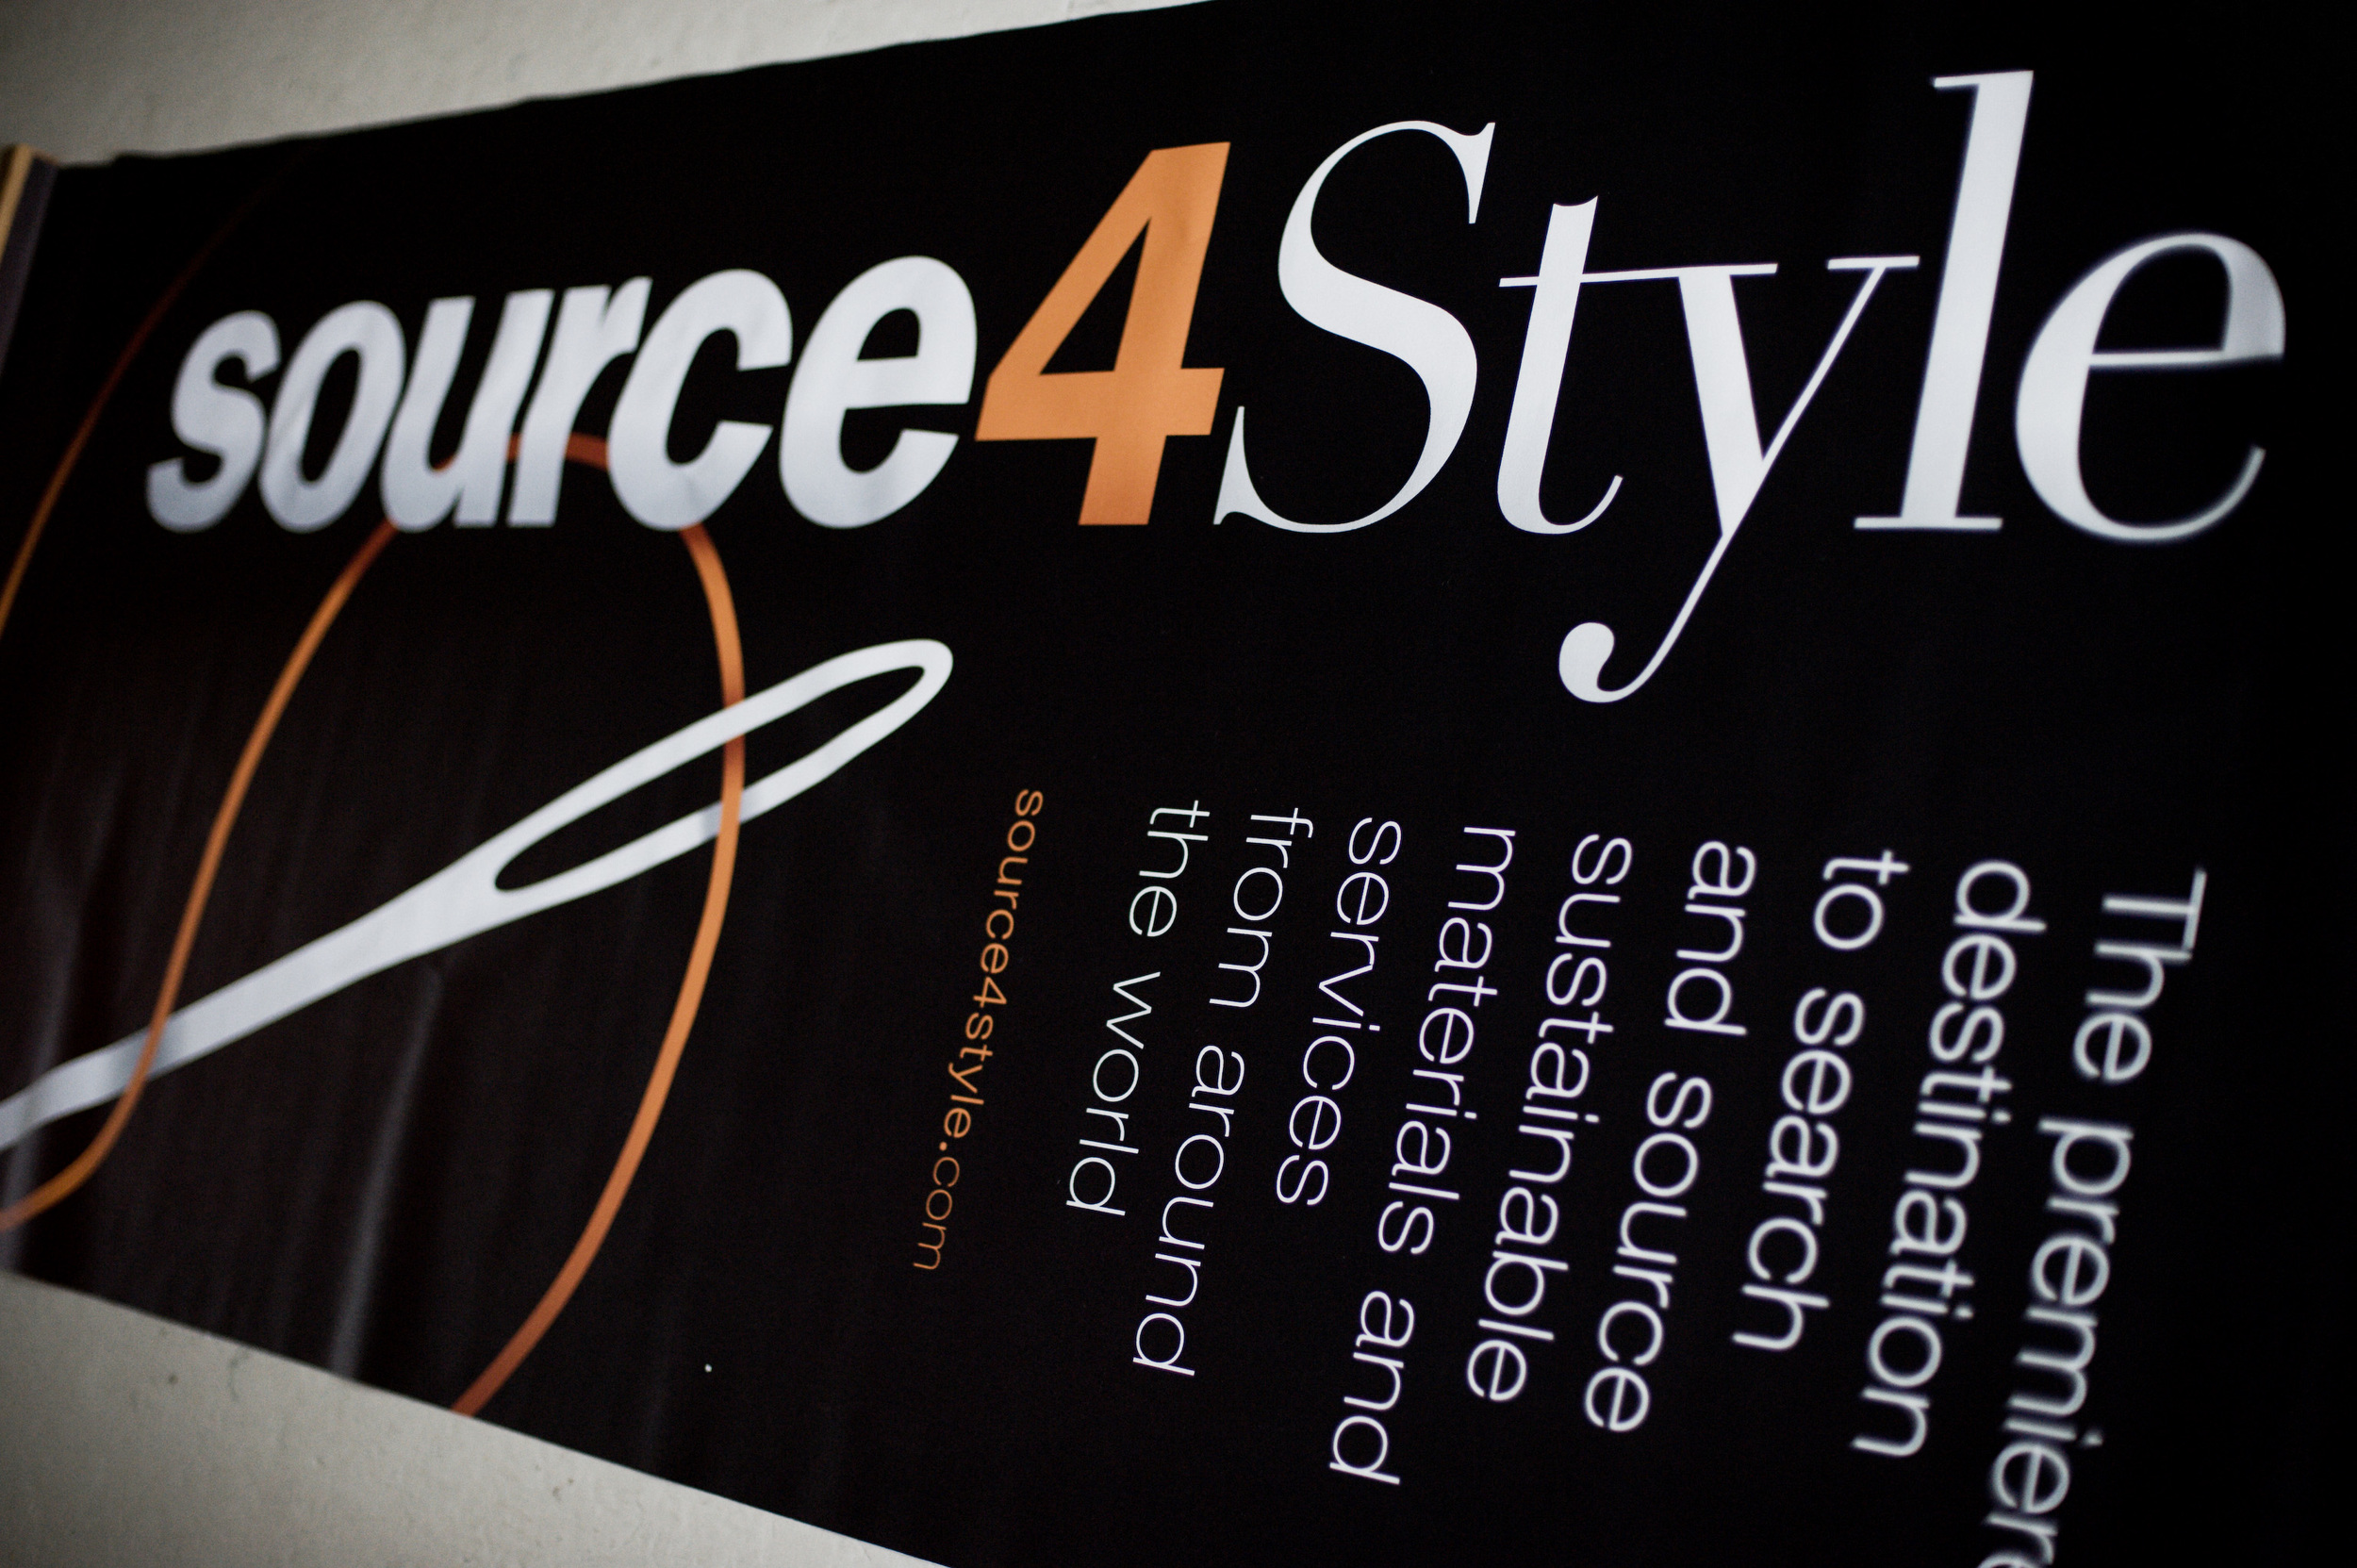 Source4Style-banner.jpg